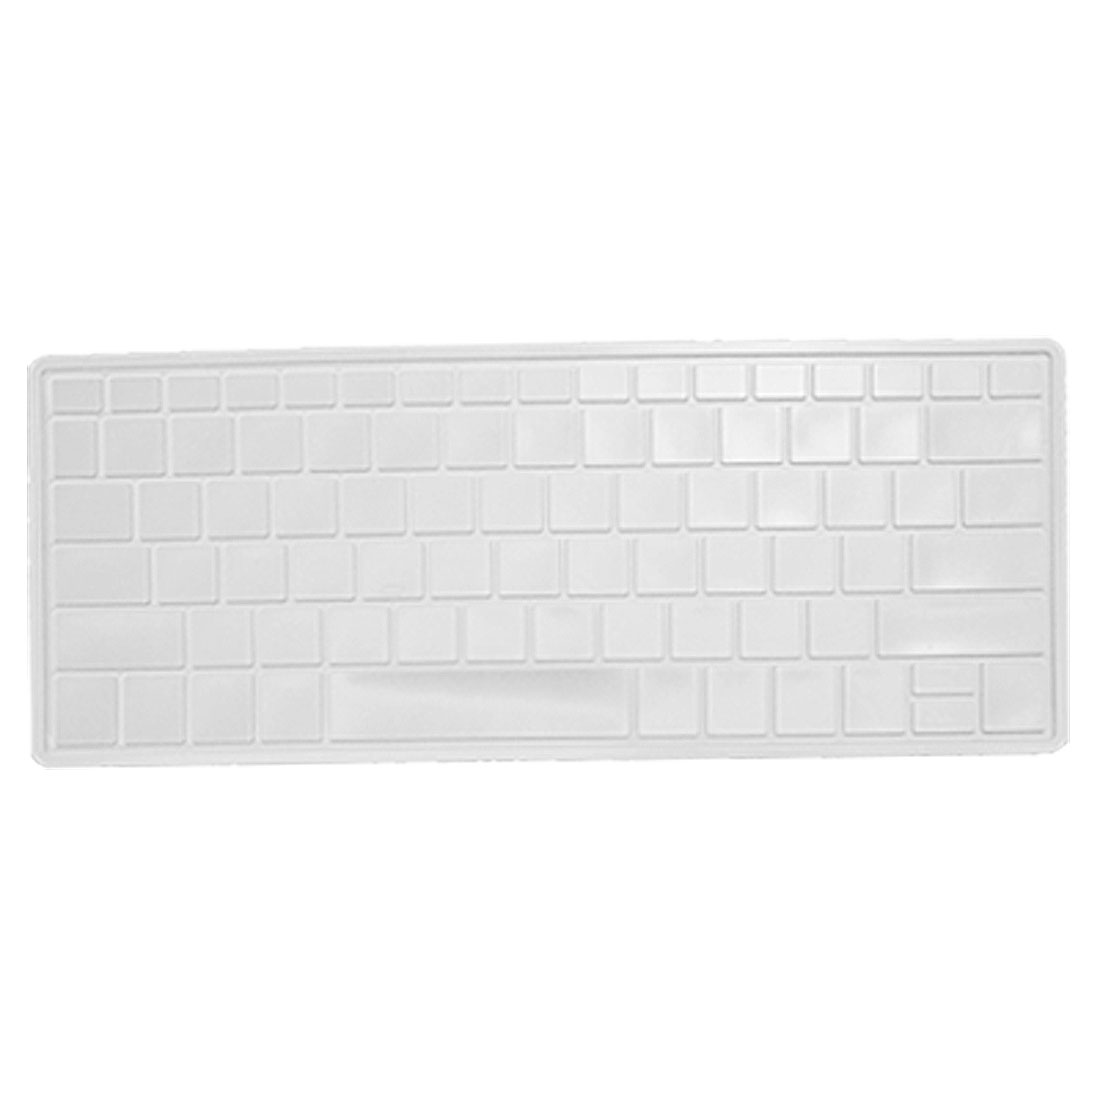 Laptop Clear Silicone Keyboard Protector for Asus Eee PC 1008HA US